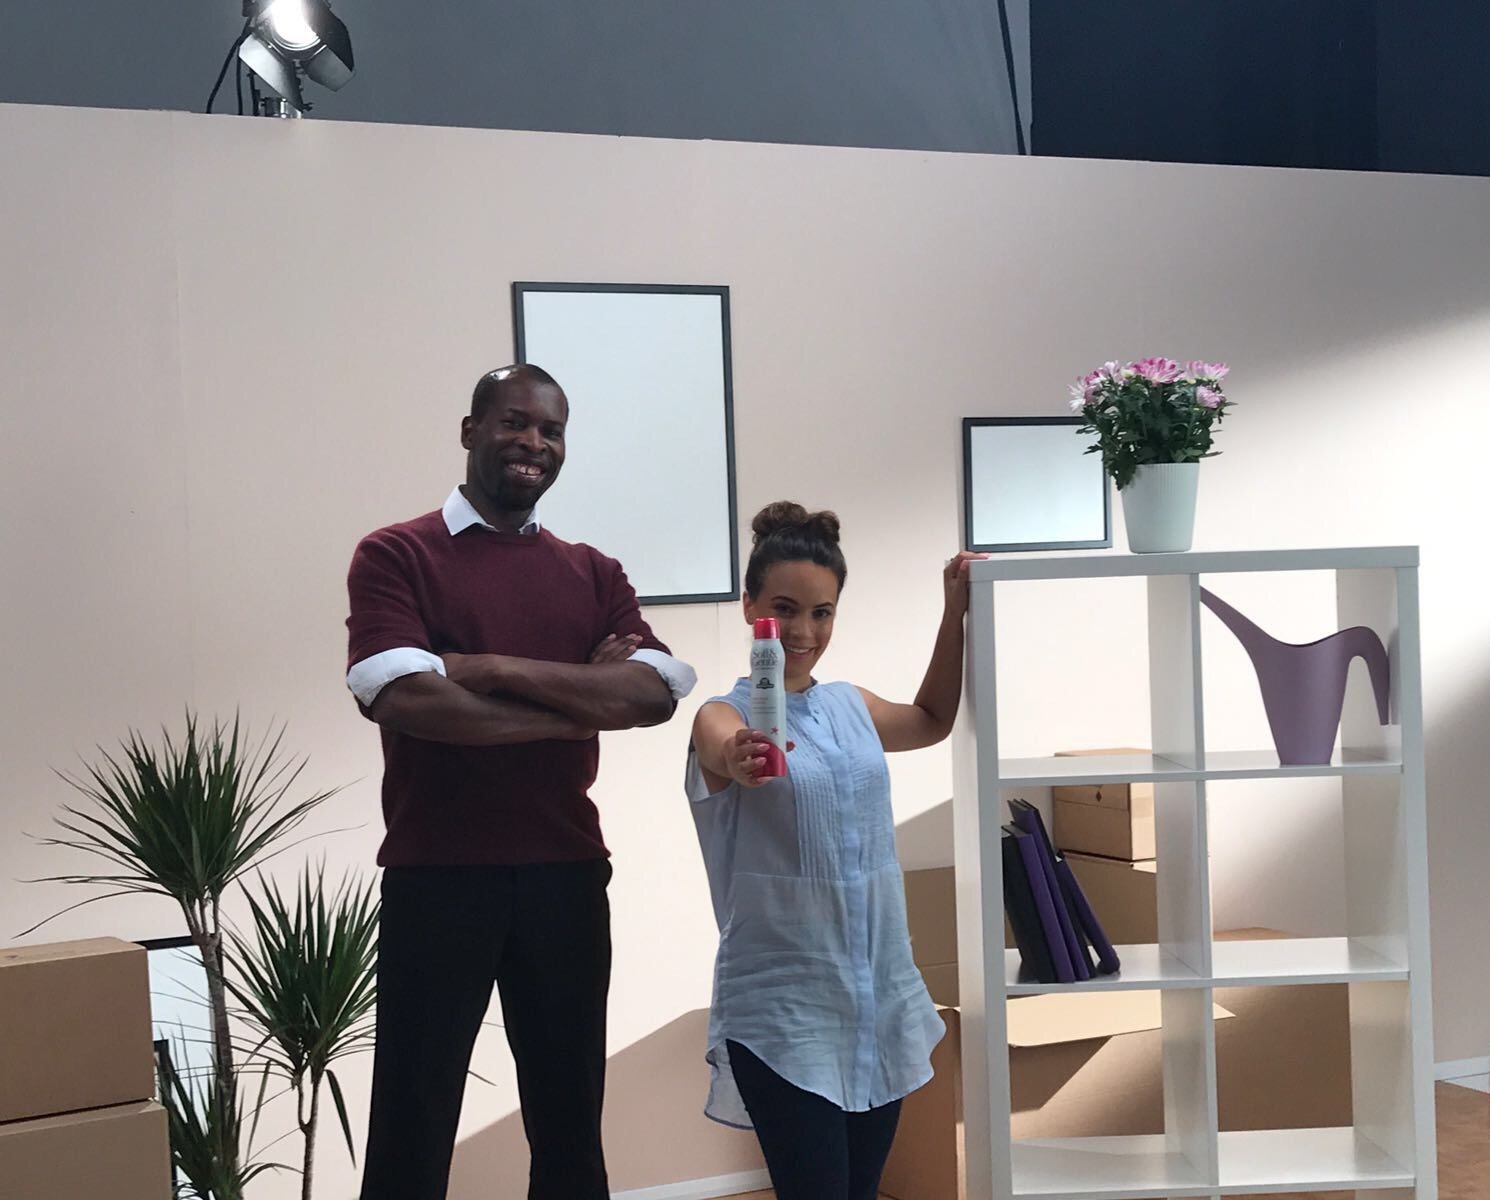 JULY   I had a great time shooting this commercial for the antiperspirant Soft & Gentle at the East London studios. It is shown on Facebook, YouTube and Instagram.  See the ad.